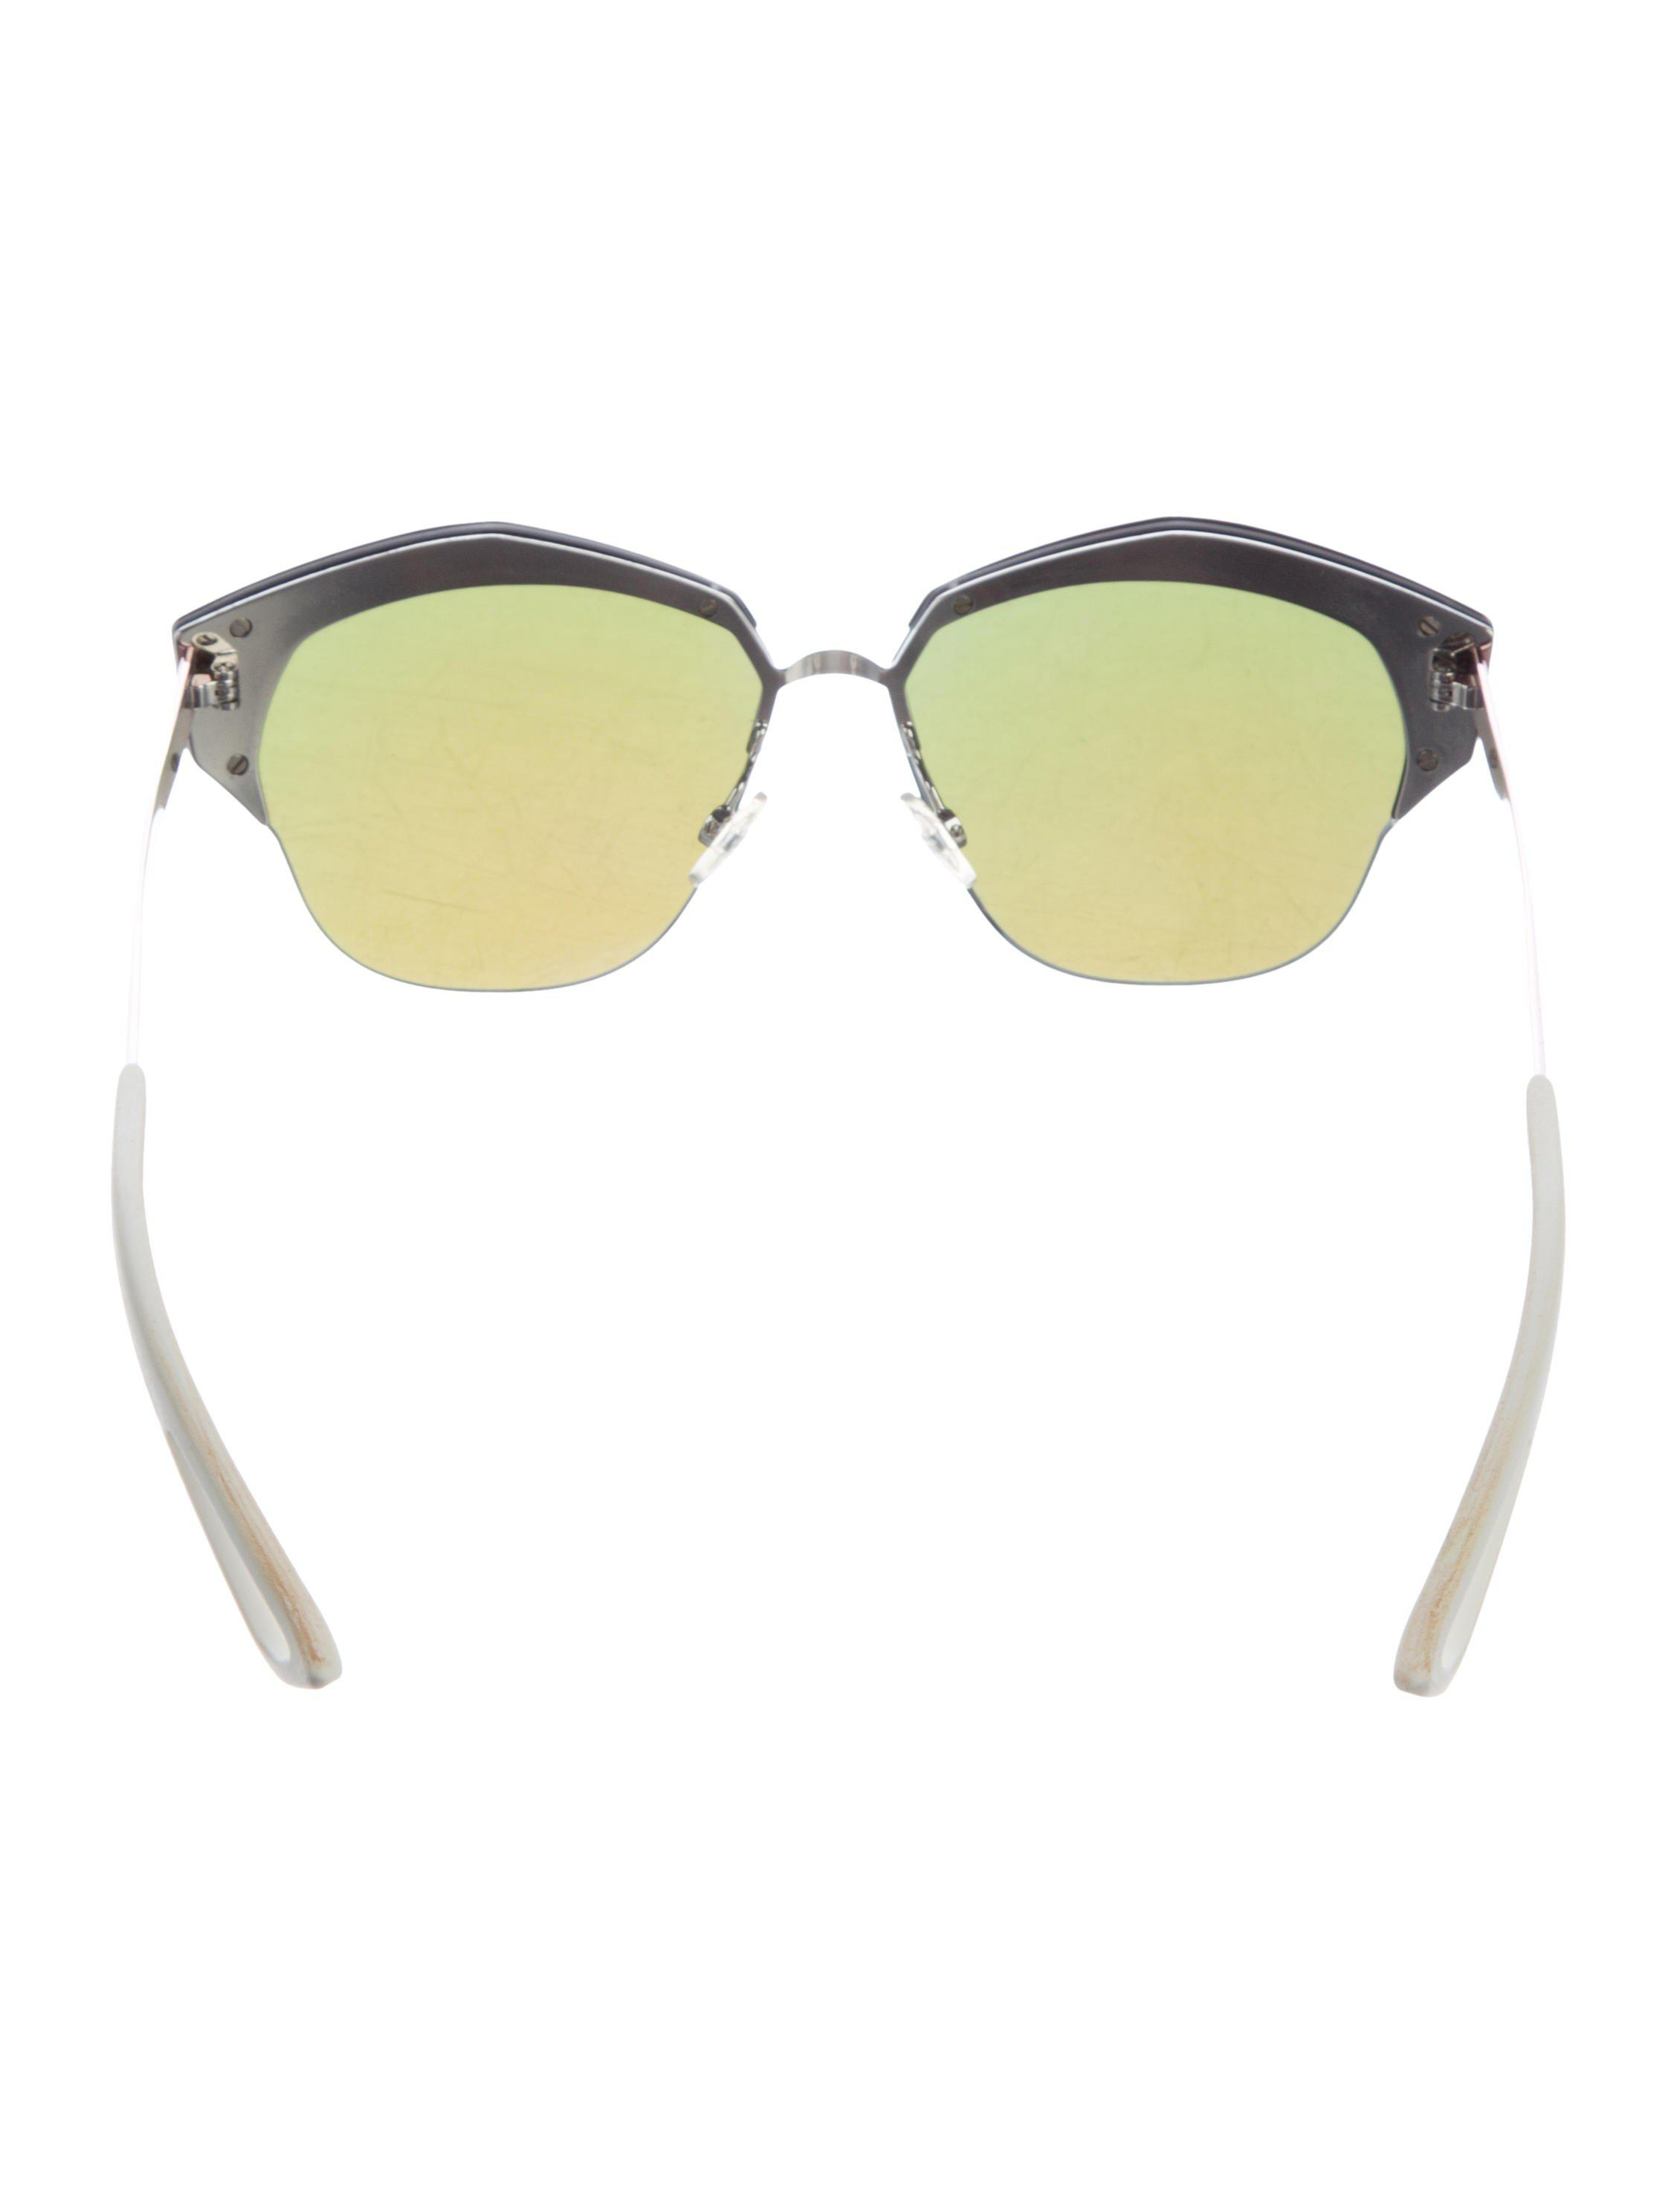 ef6159b497157 Gallery. Previously sold at  The RealReal · Women s Mirrored Sunglasses  Women s Clubmaster ...